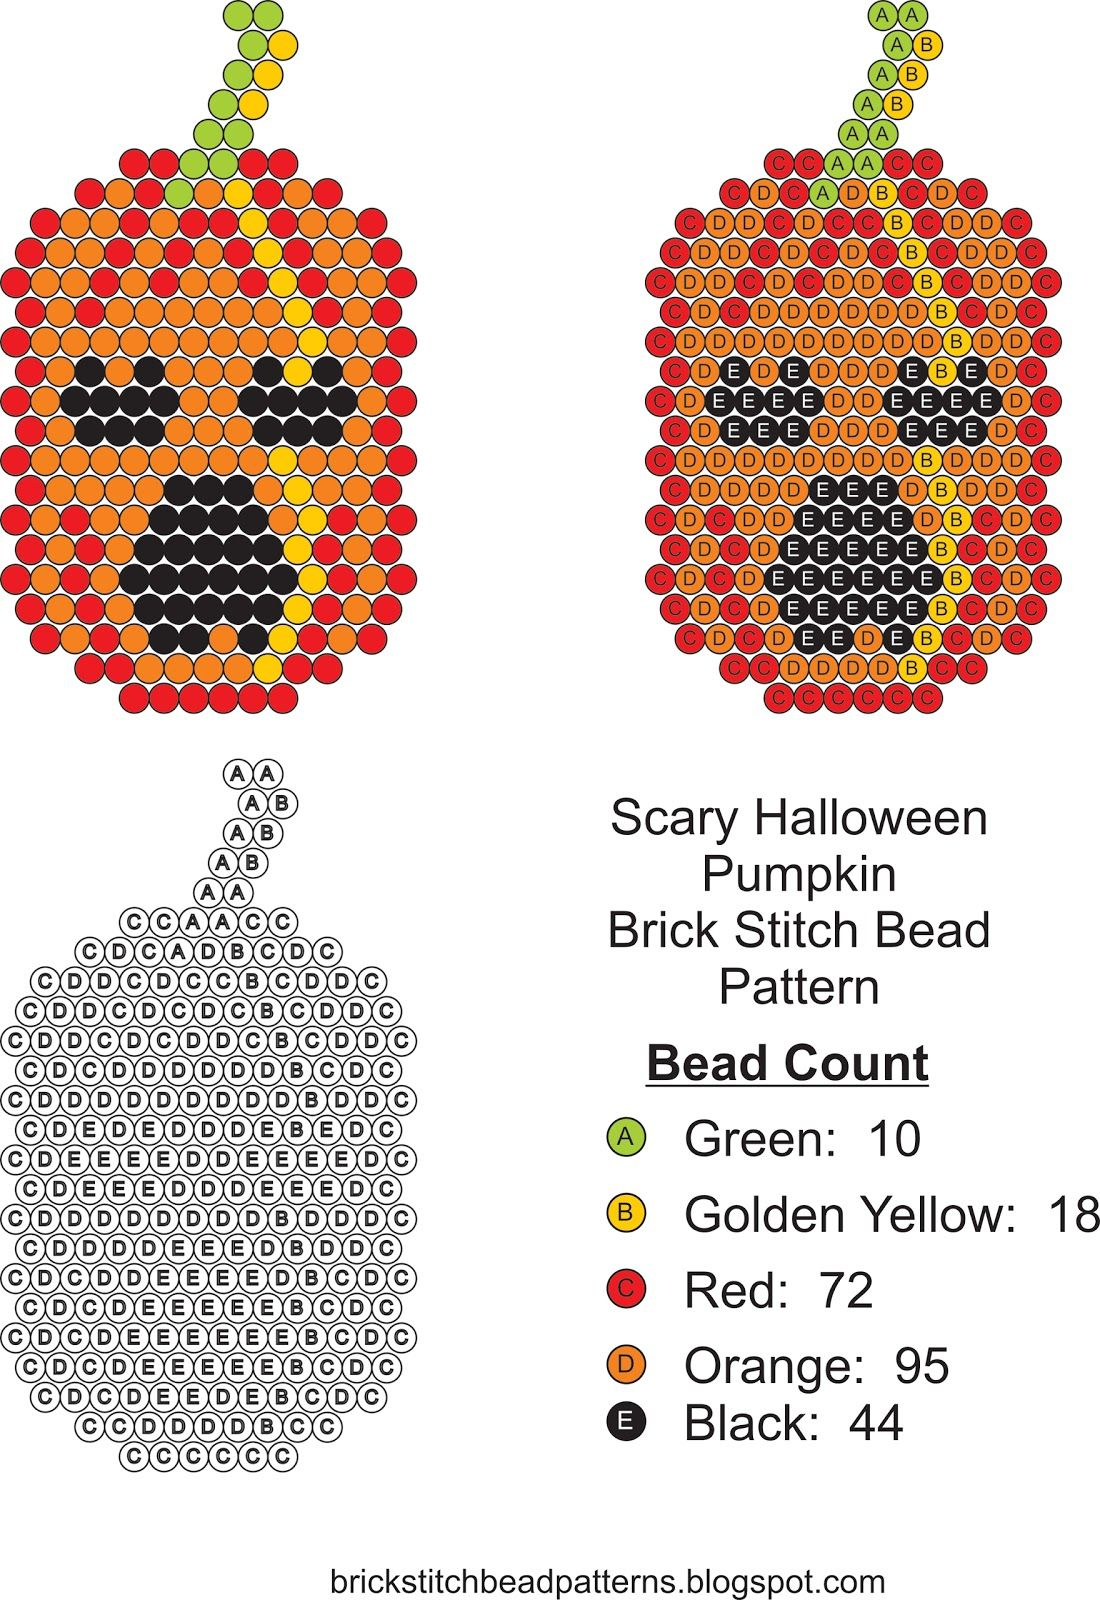 Scary Beaded Halloween Jack-O-Lantern Pumpkin #3 | djmorningstar ...